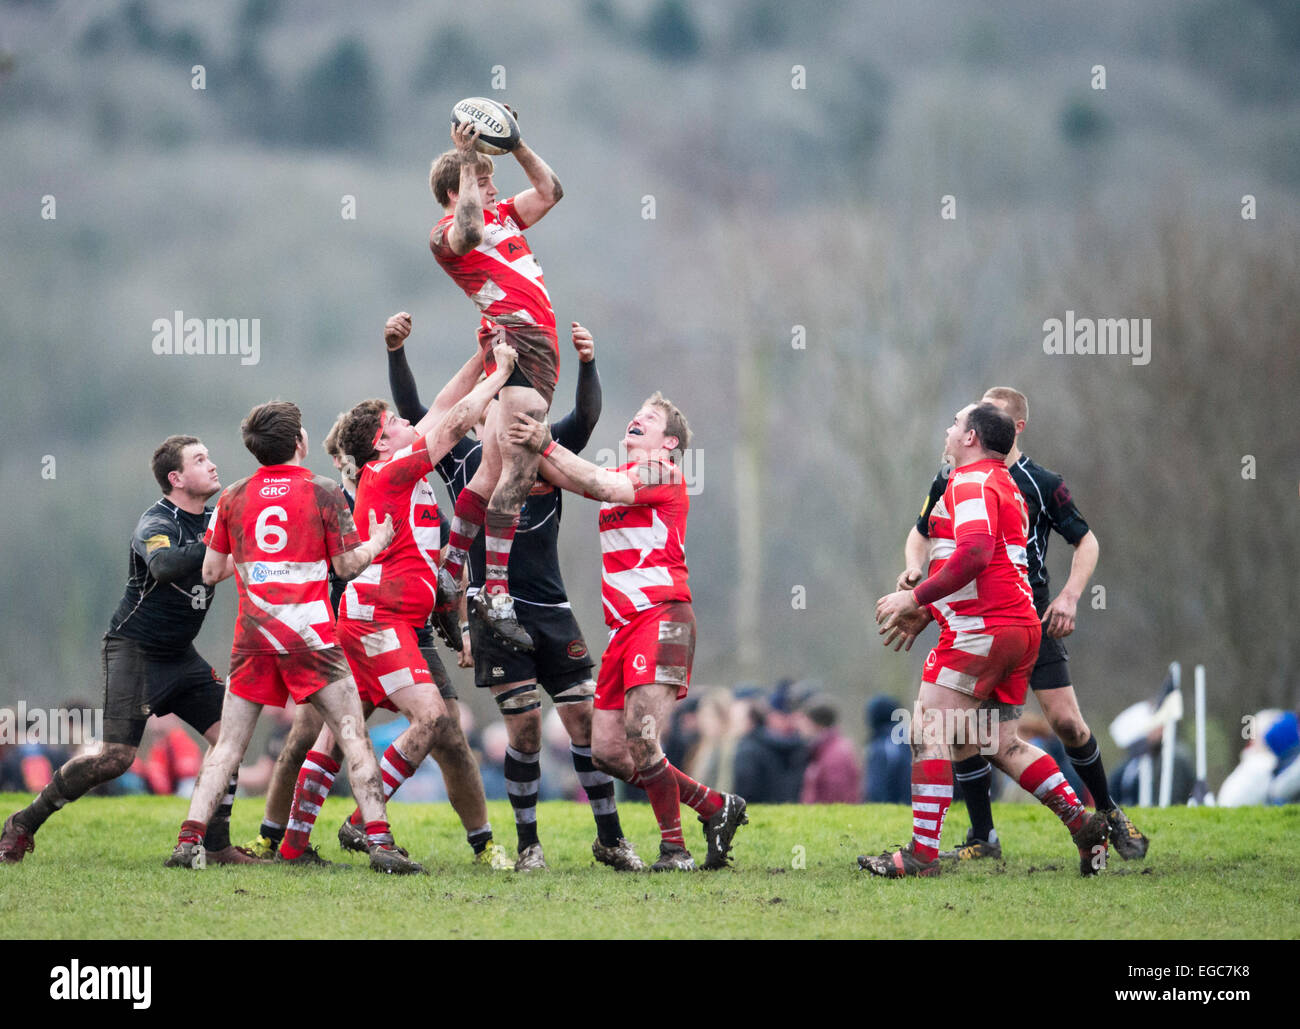 Rugby line out, players in action. - Stock Image